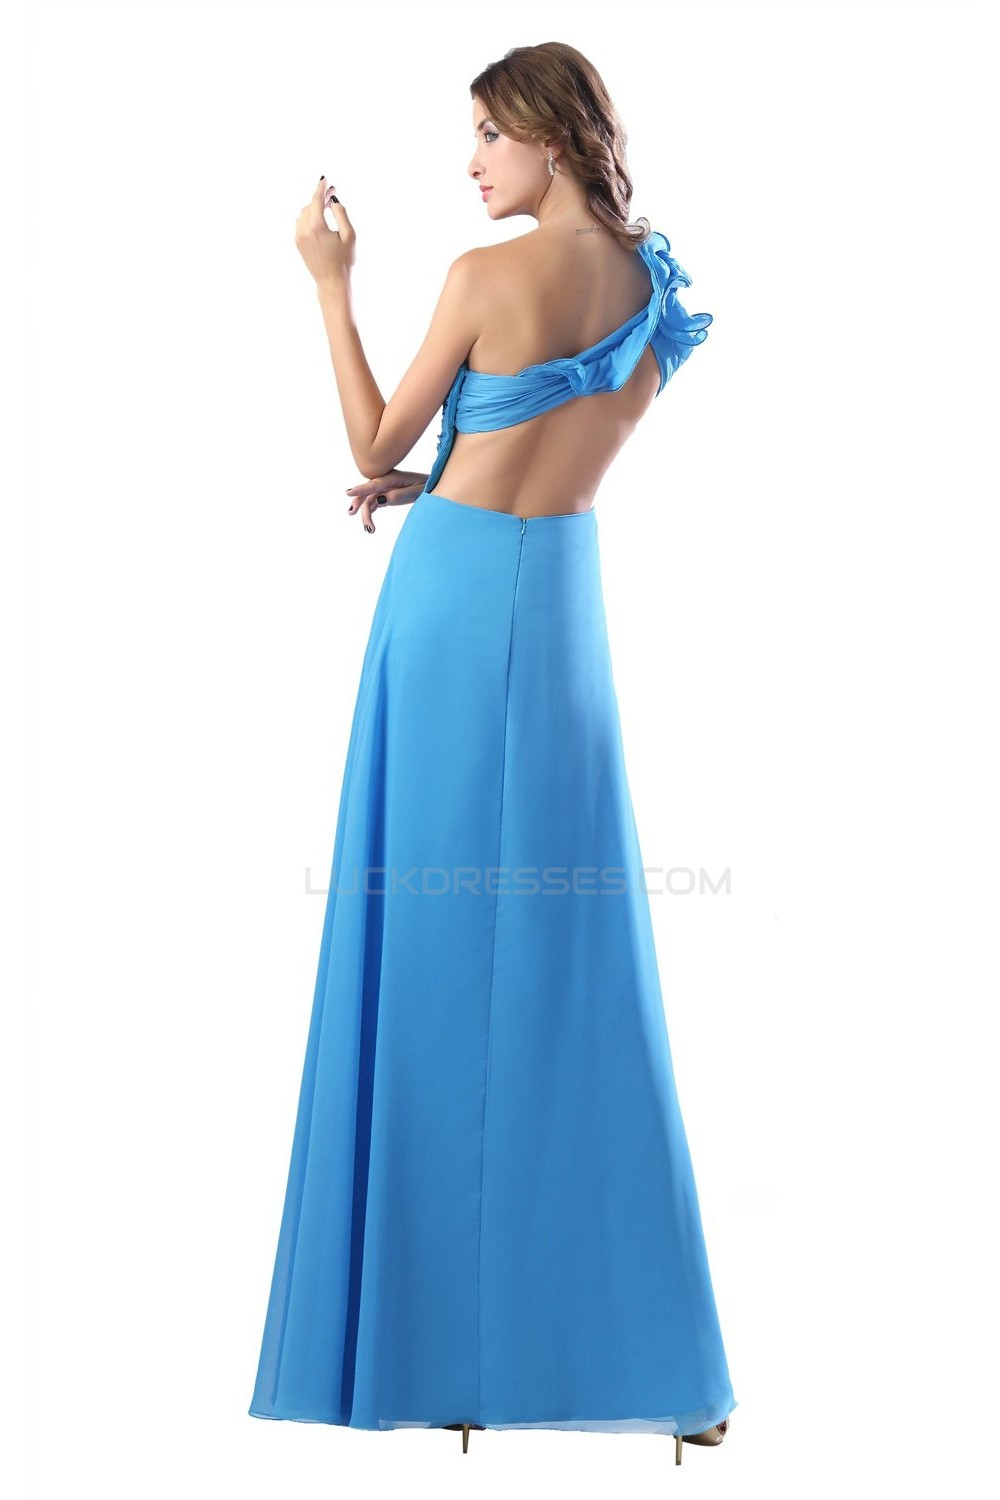 Blue One-Shoulder Beaded Chiffon Prom Evening Formal Party Dresses ...